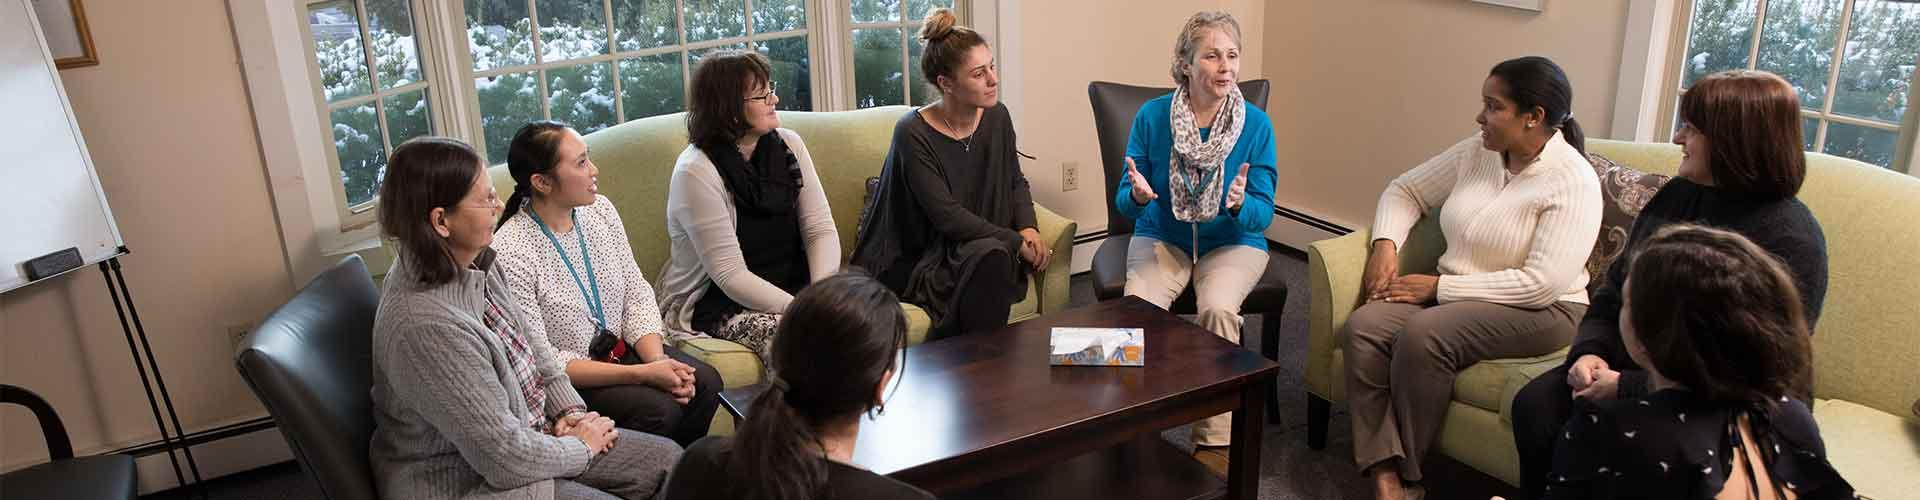 Women in group therapy in living room